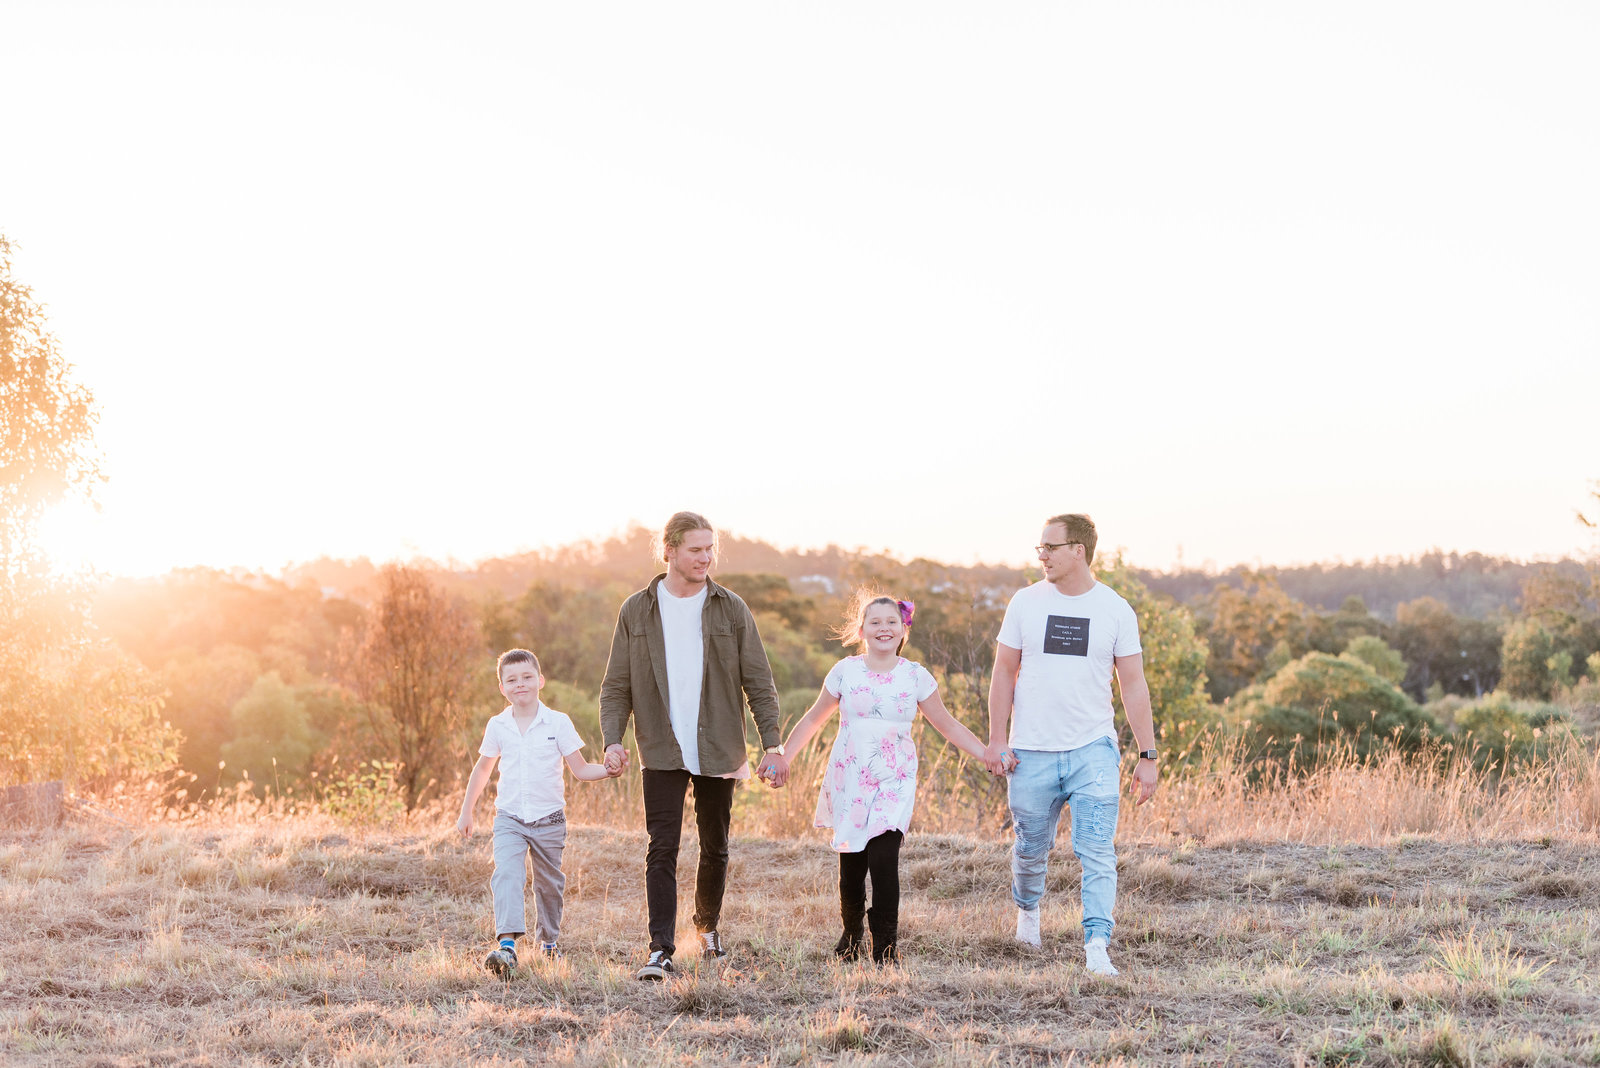 relaxed-family-portraits-sunset-grassy-field-sprinfield-brisbane-lead-images (5 of 12)